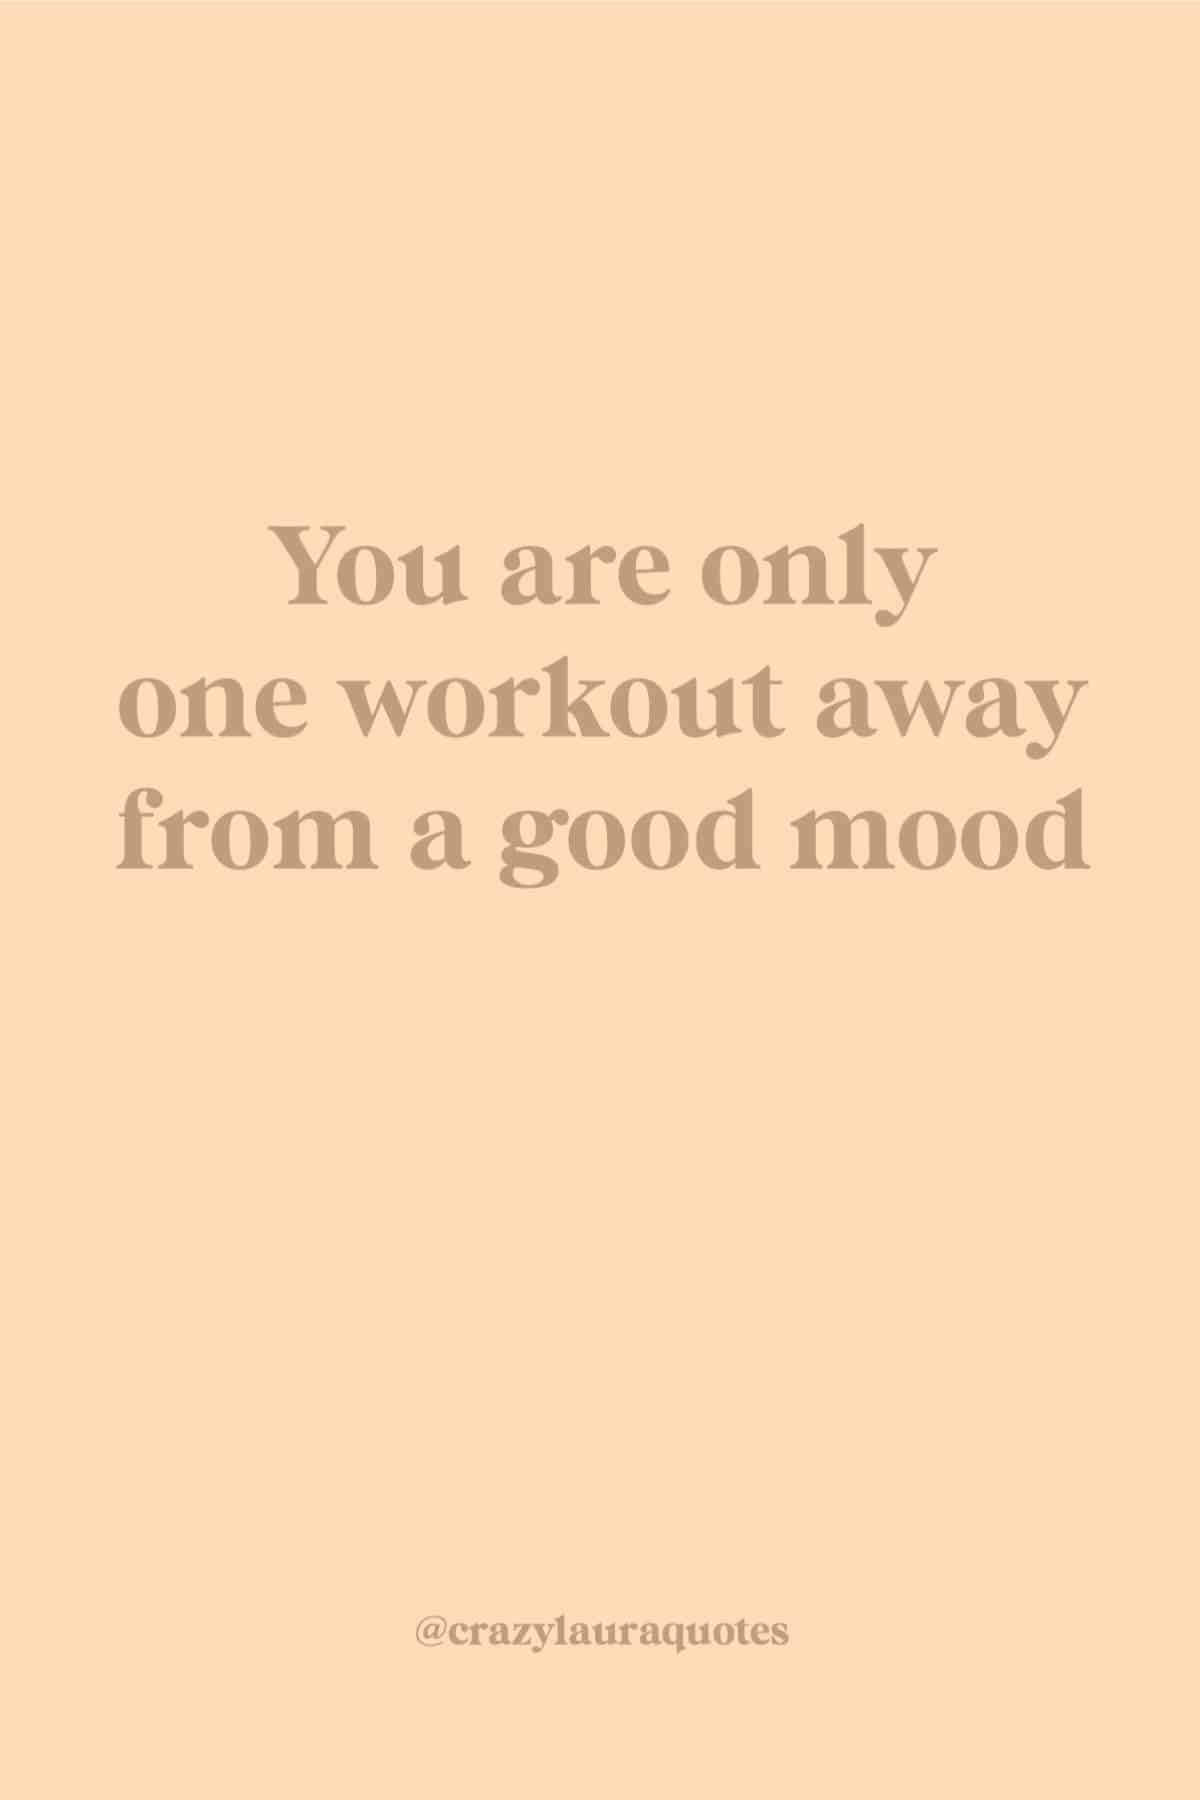 good mood workout quote